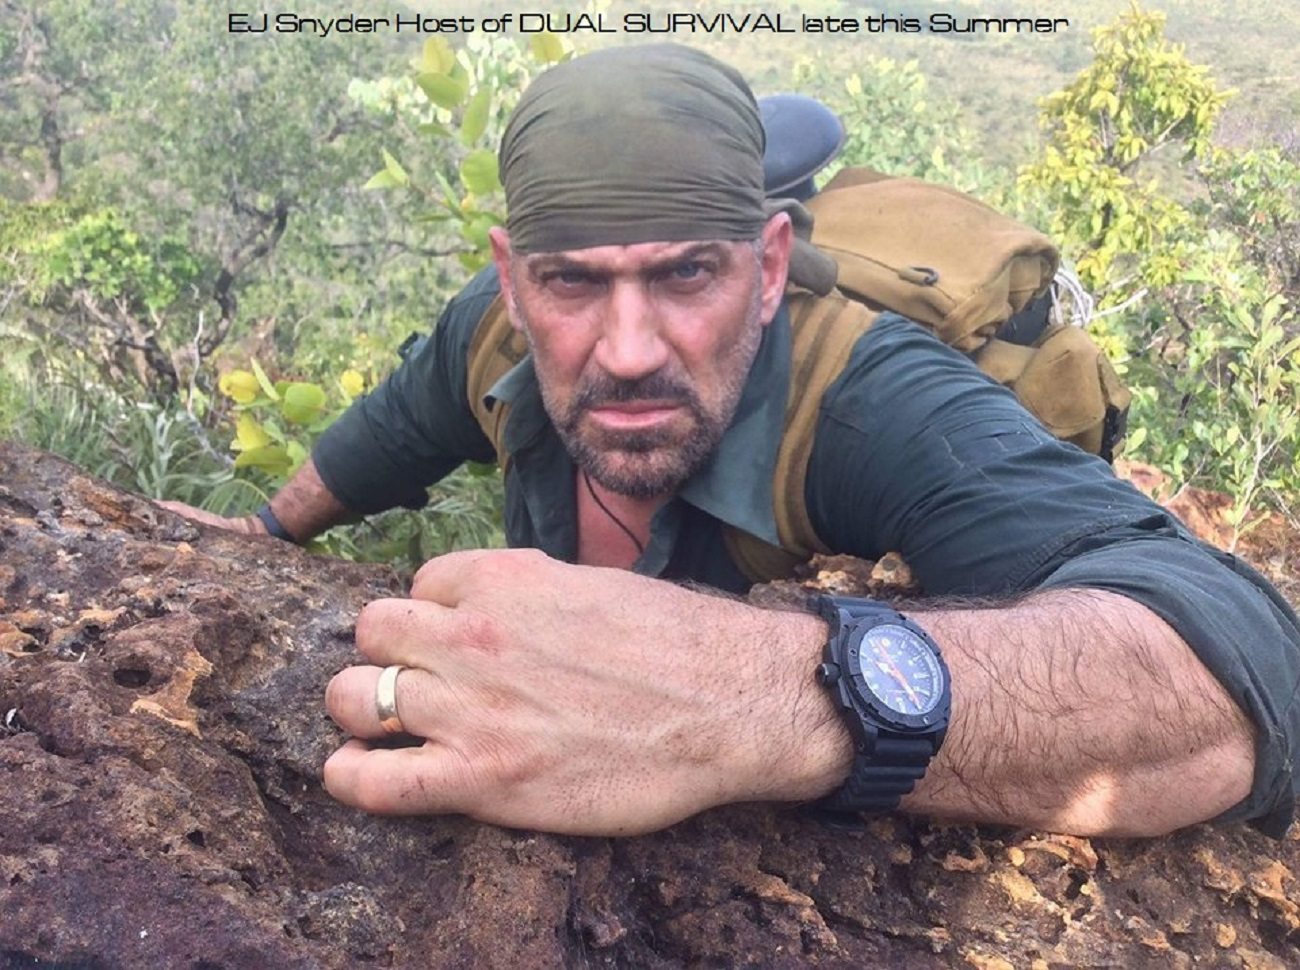 We Talk Naked And Afraid Hosting Dual Survival And Tops